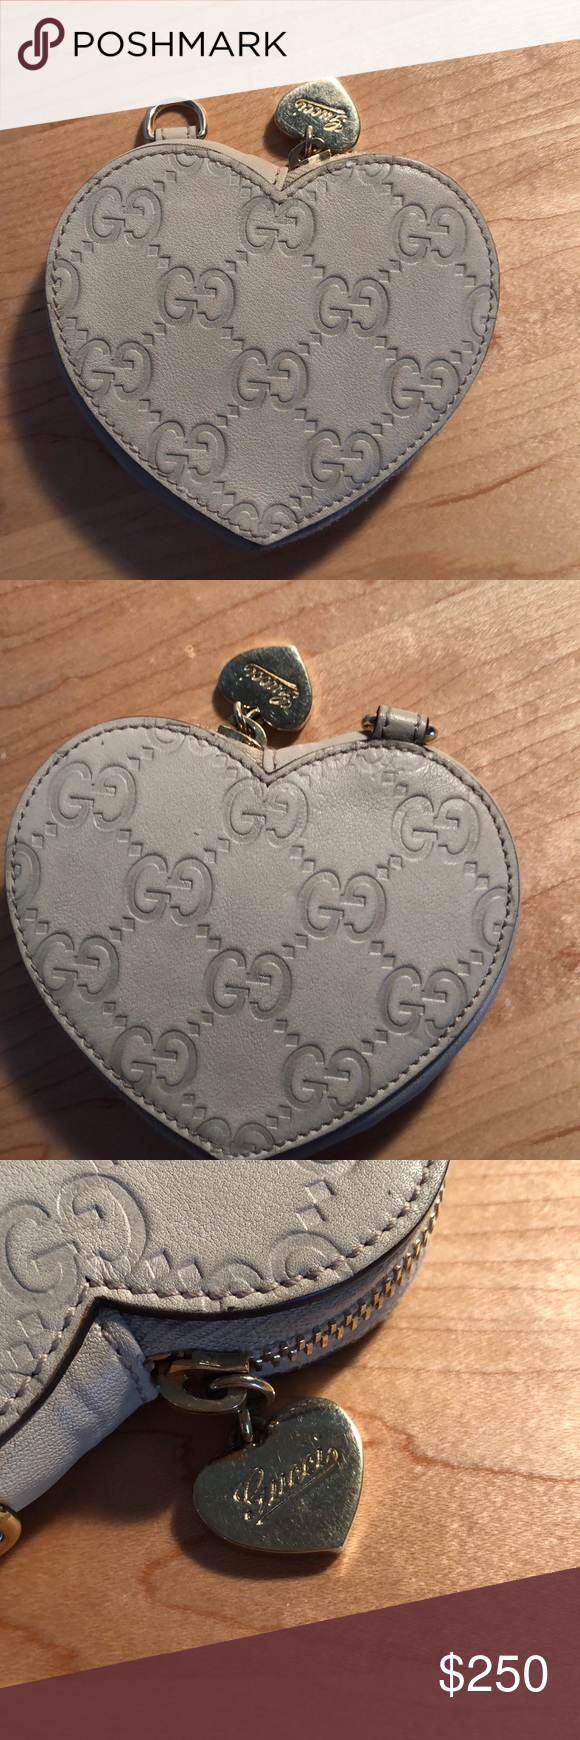 377c199de48e Guccissima leather coin purse Beige leather Guccissima heart coin purse.  I'm creat condition, some scratching on metal hardware. No box or dustbag.  Gucci ...